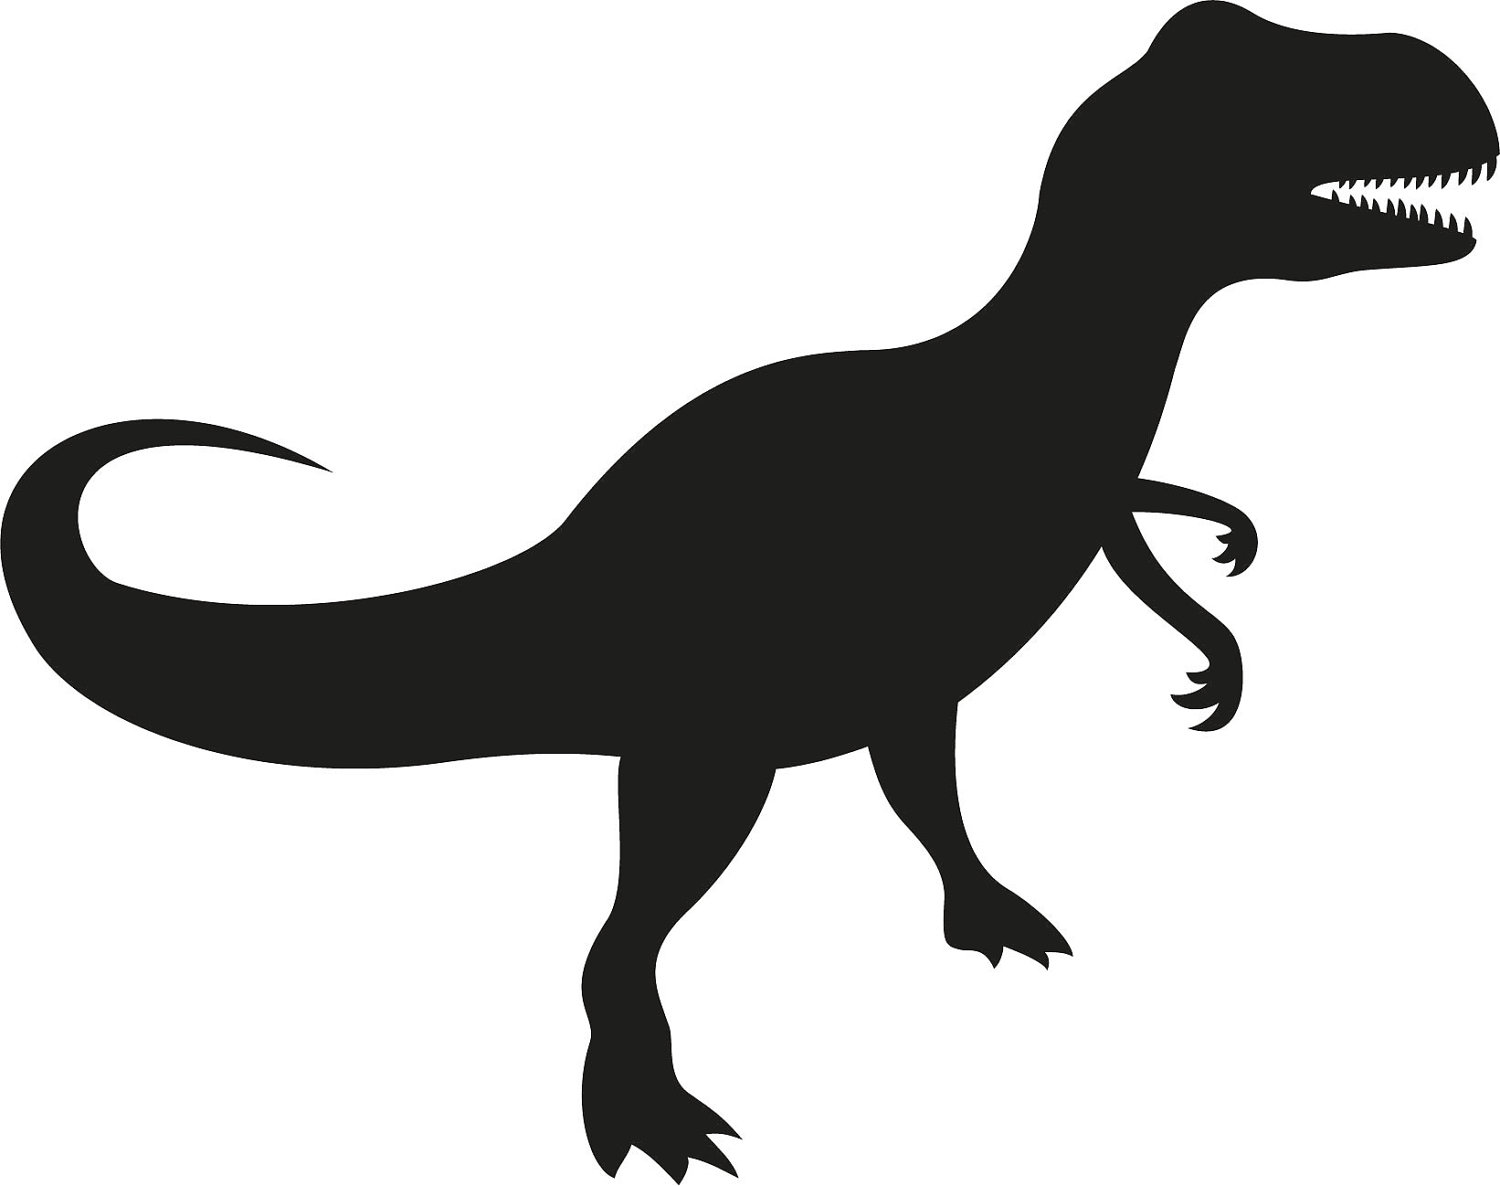 T rex free download. Trex clipart black and white